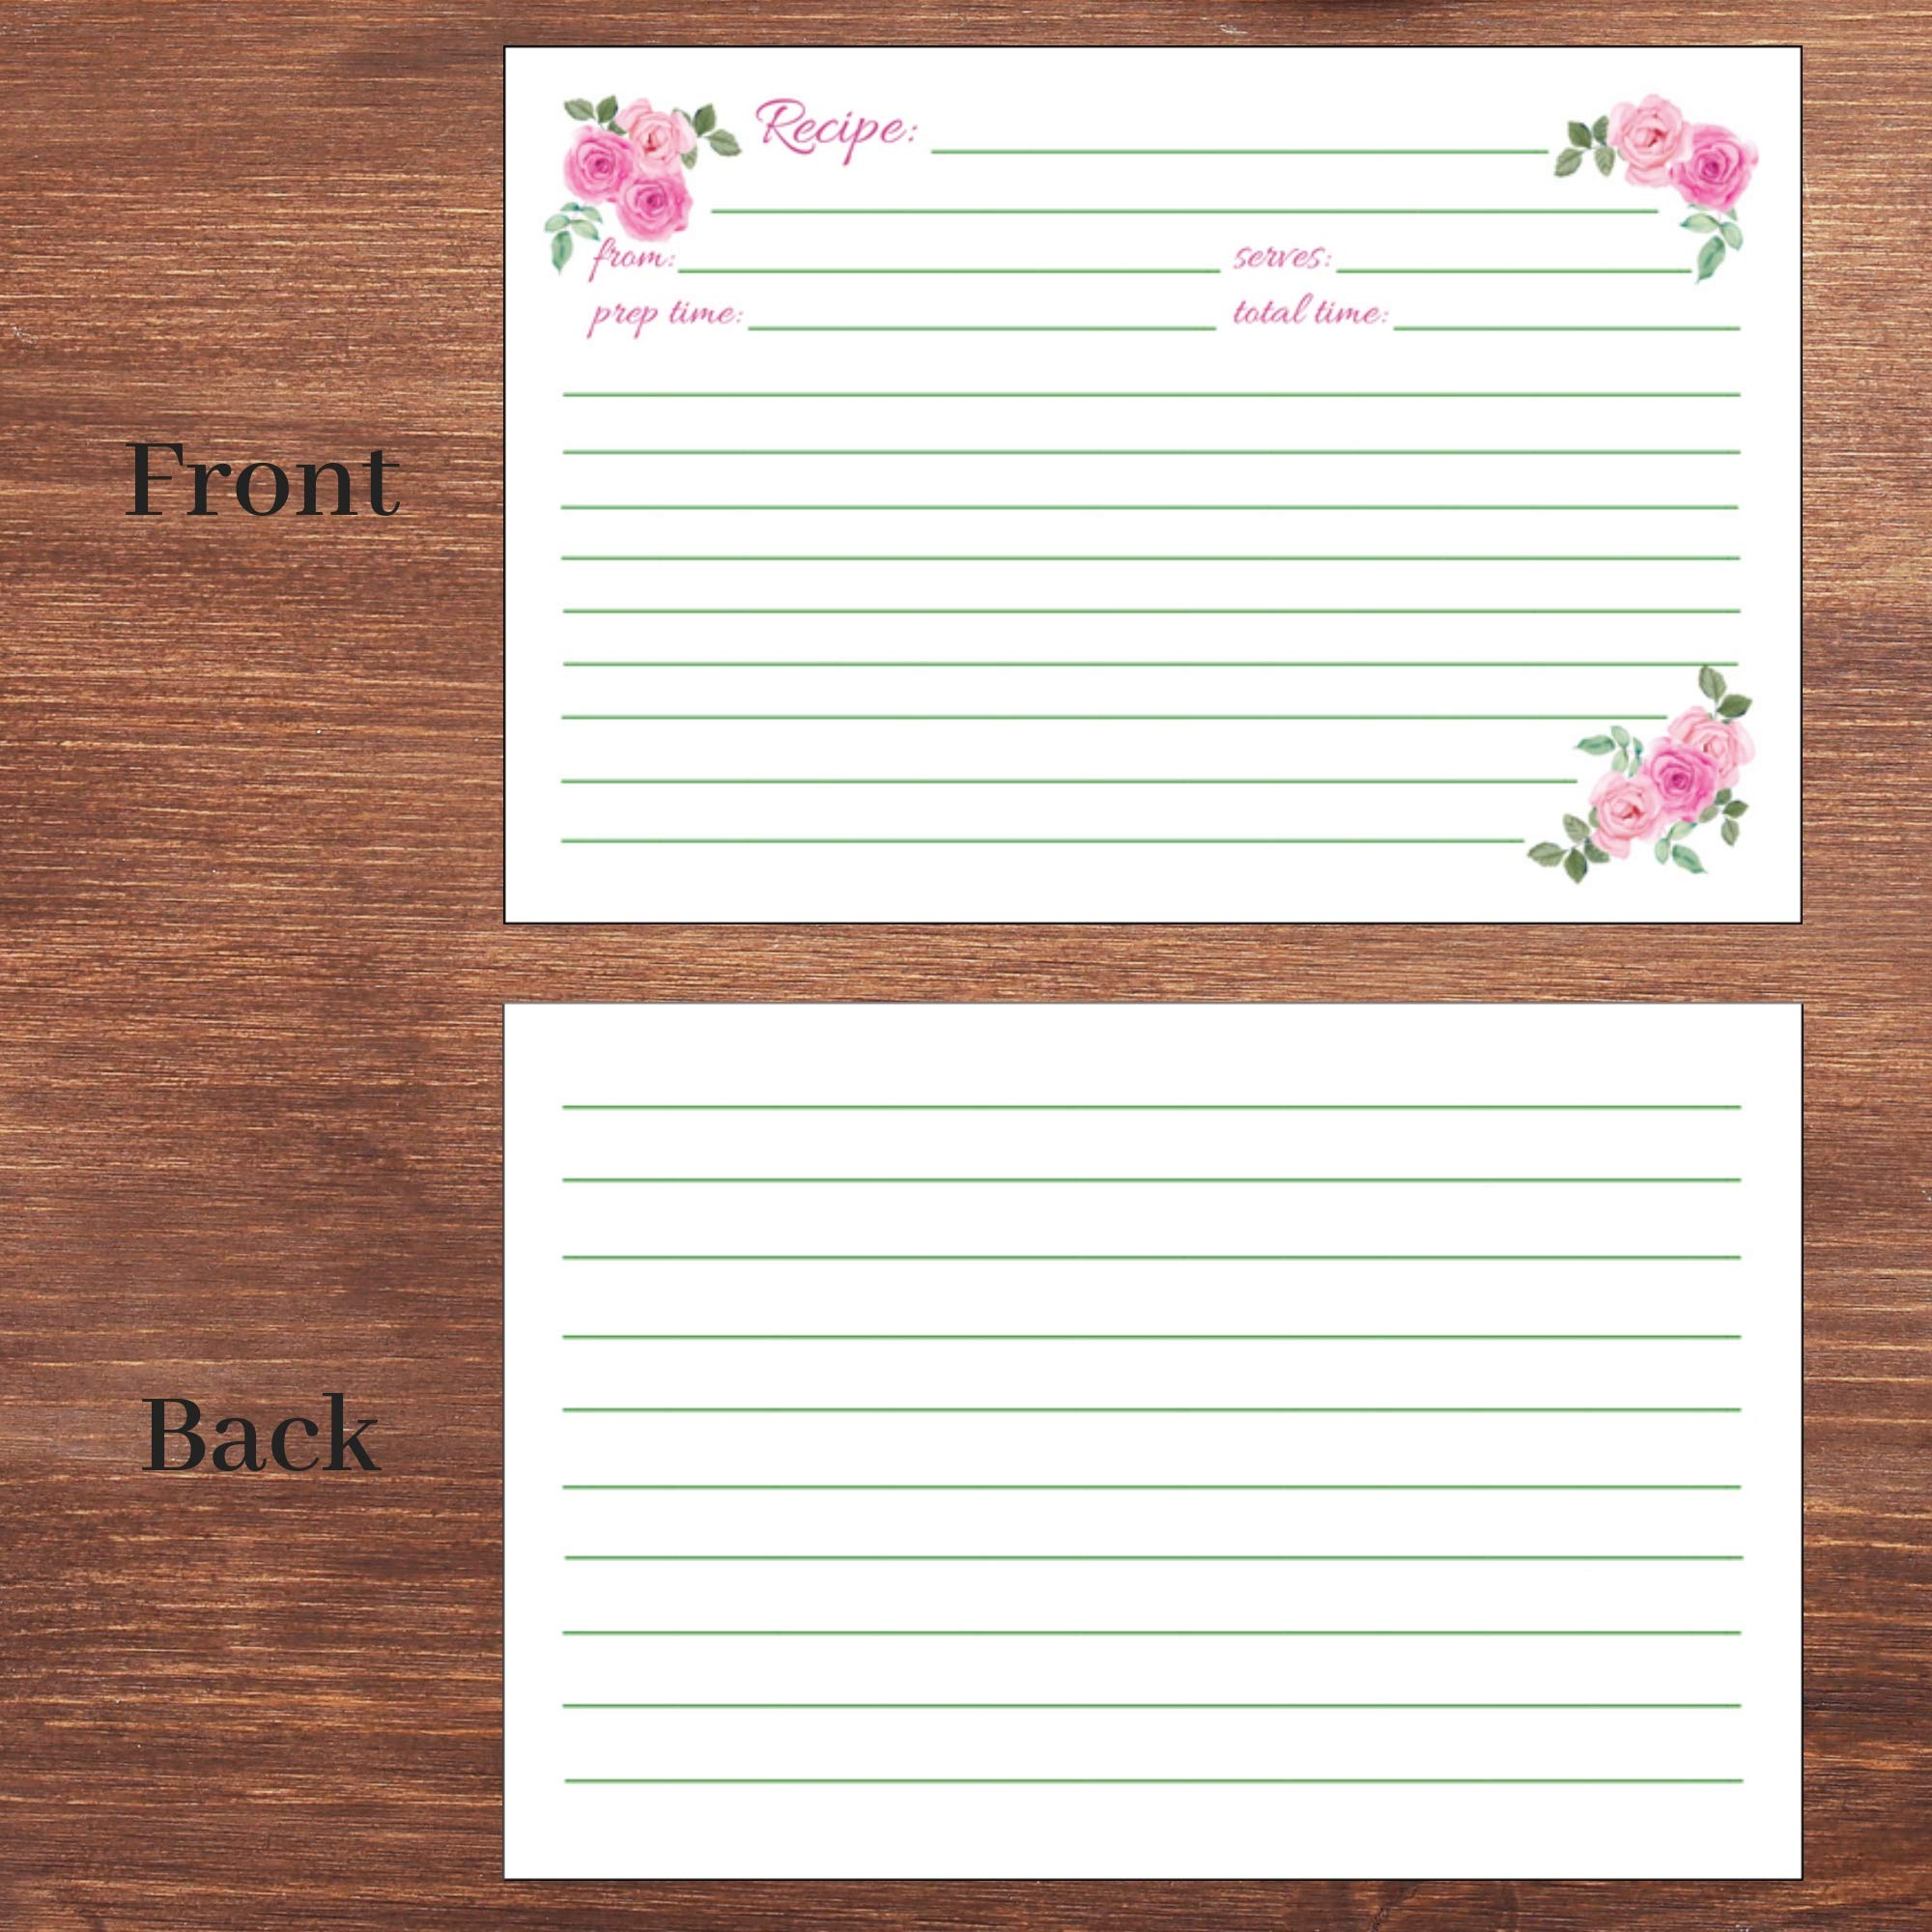 50 Floral Recipe Cards Pink Rose 4x6 Double Sided Wedding Bridal Shower Card Blank Plain Printable Recipe Card For Box Cook Book Index Cards Cute